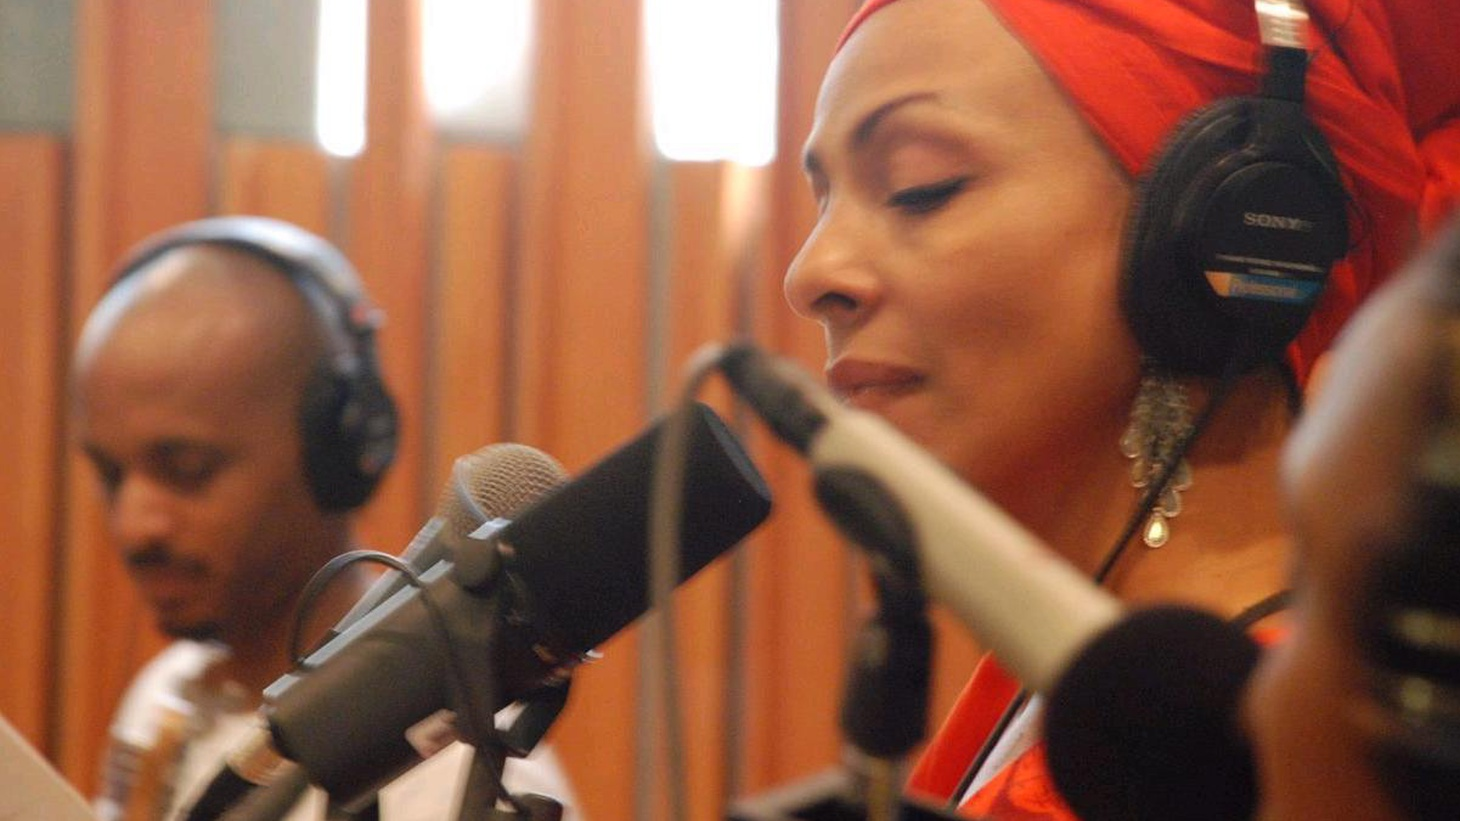 ...from ReCreation.   Zap Mama delivered another impeccable session on Morning Becomes Eclectic yesterday. Today's Top Tune is a song that they weren't able to include in their set.